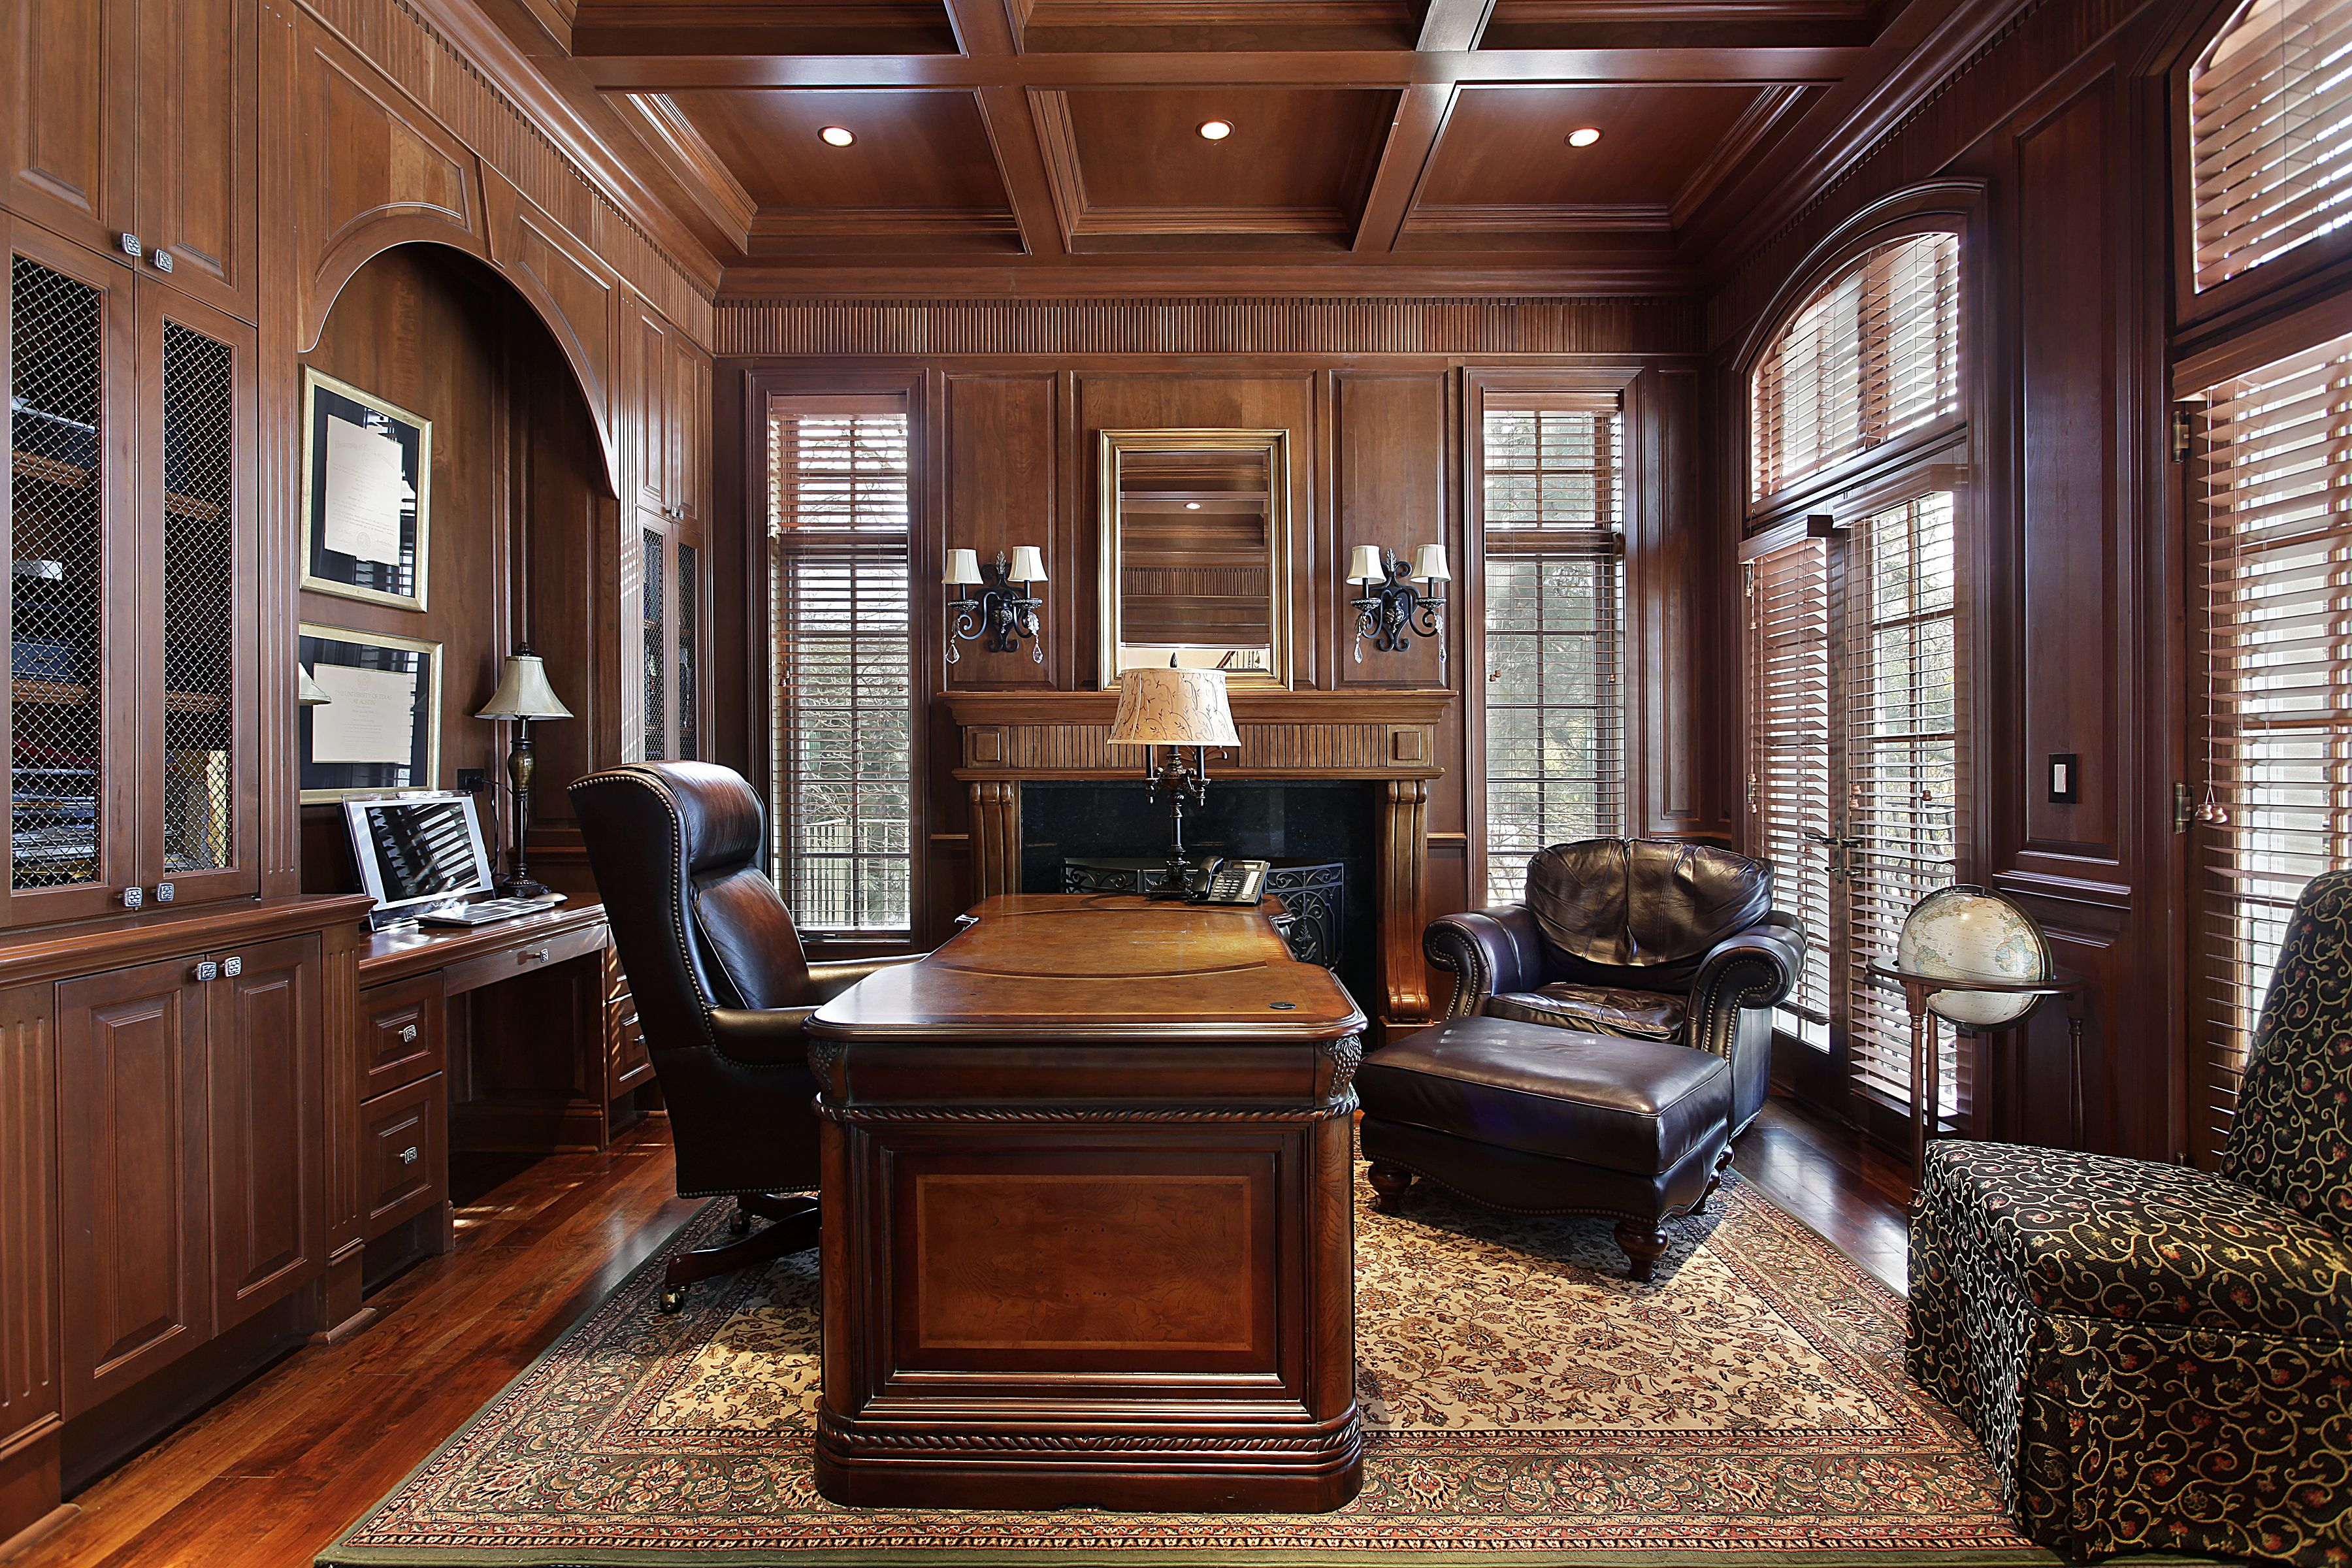 Rich, Luxurious Hardwood Floors And Tongue And Groove Ceiling Give